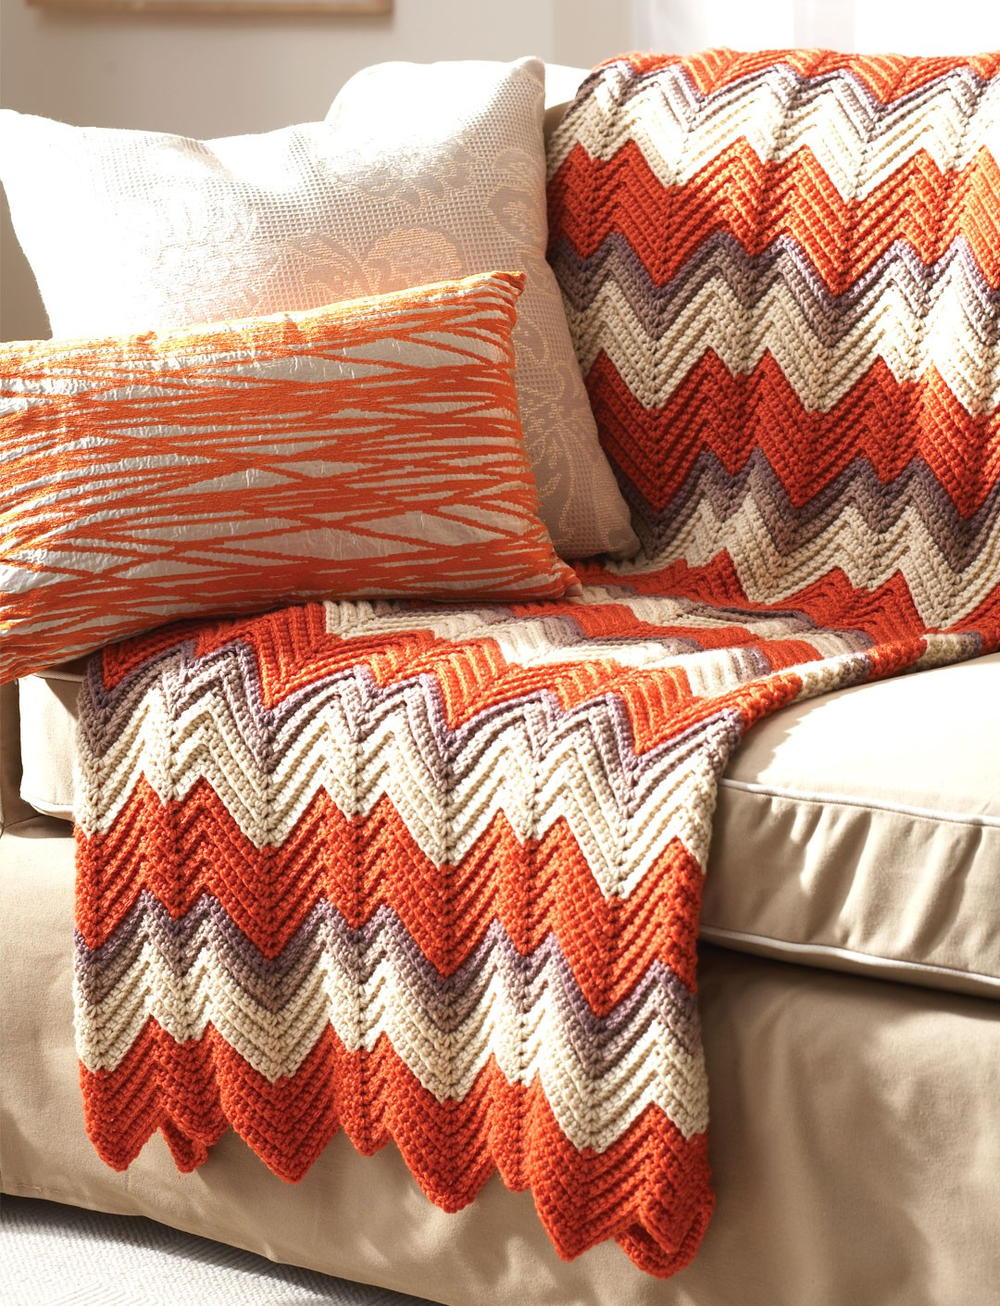 Zigzag Crochet Pattern Awesome Inspiration Ideas